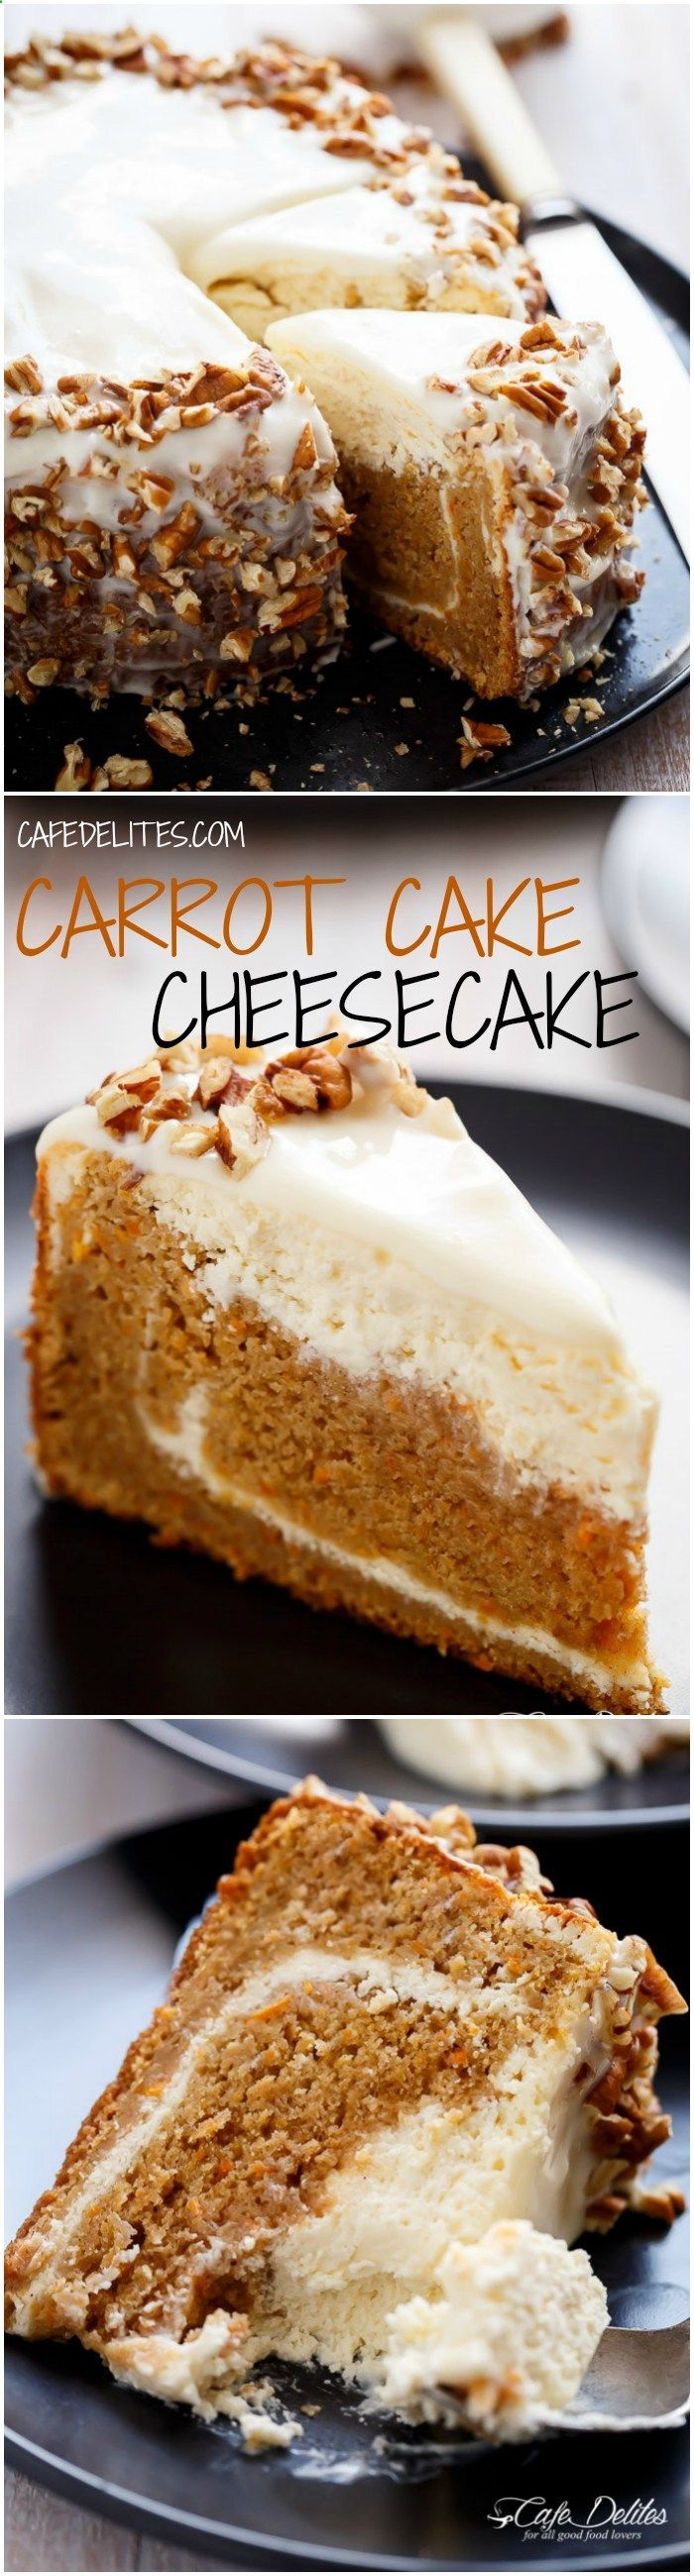 Carrot Cake Cheesecake to add to your Easter menu planning! A fluffy and super moist, lower in fat, lighter in calories carrot cake layered with a creamy, lemon scented cheesecake. The BEST of both worlds! | cafedelites.com